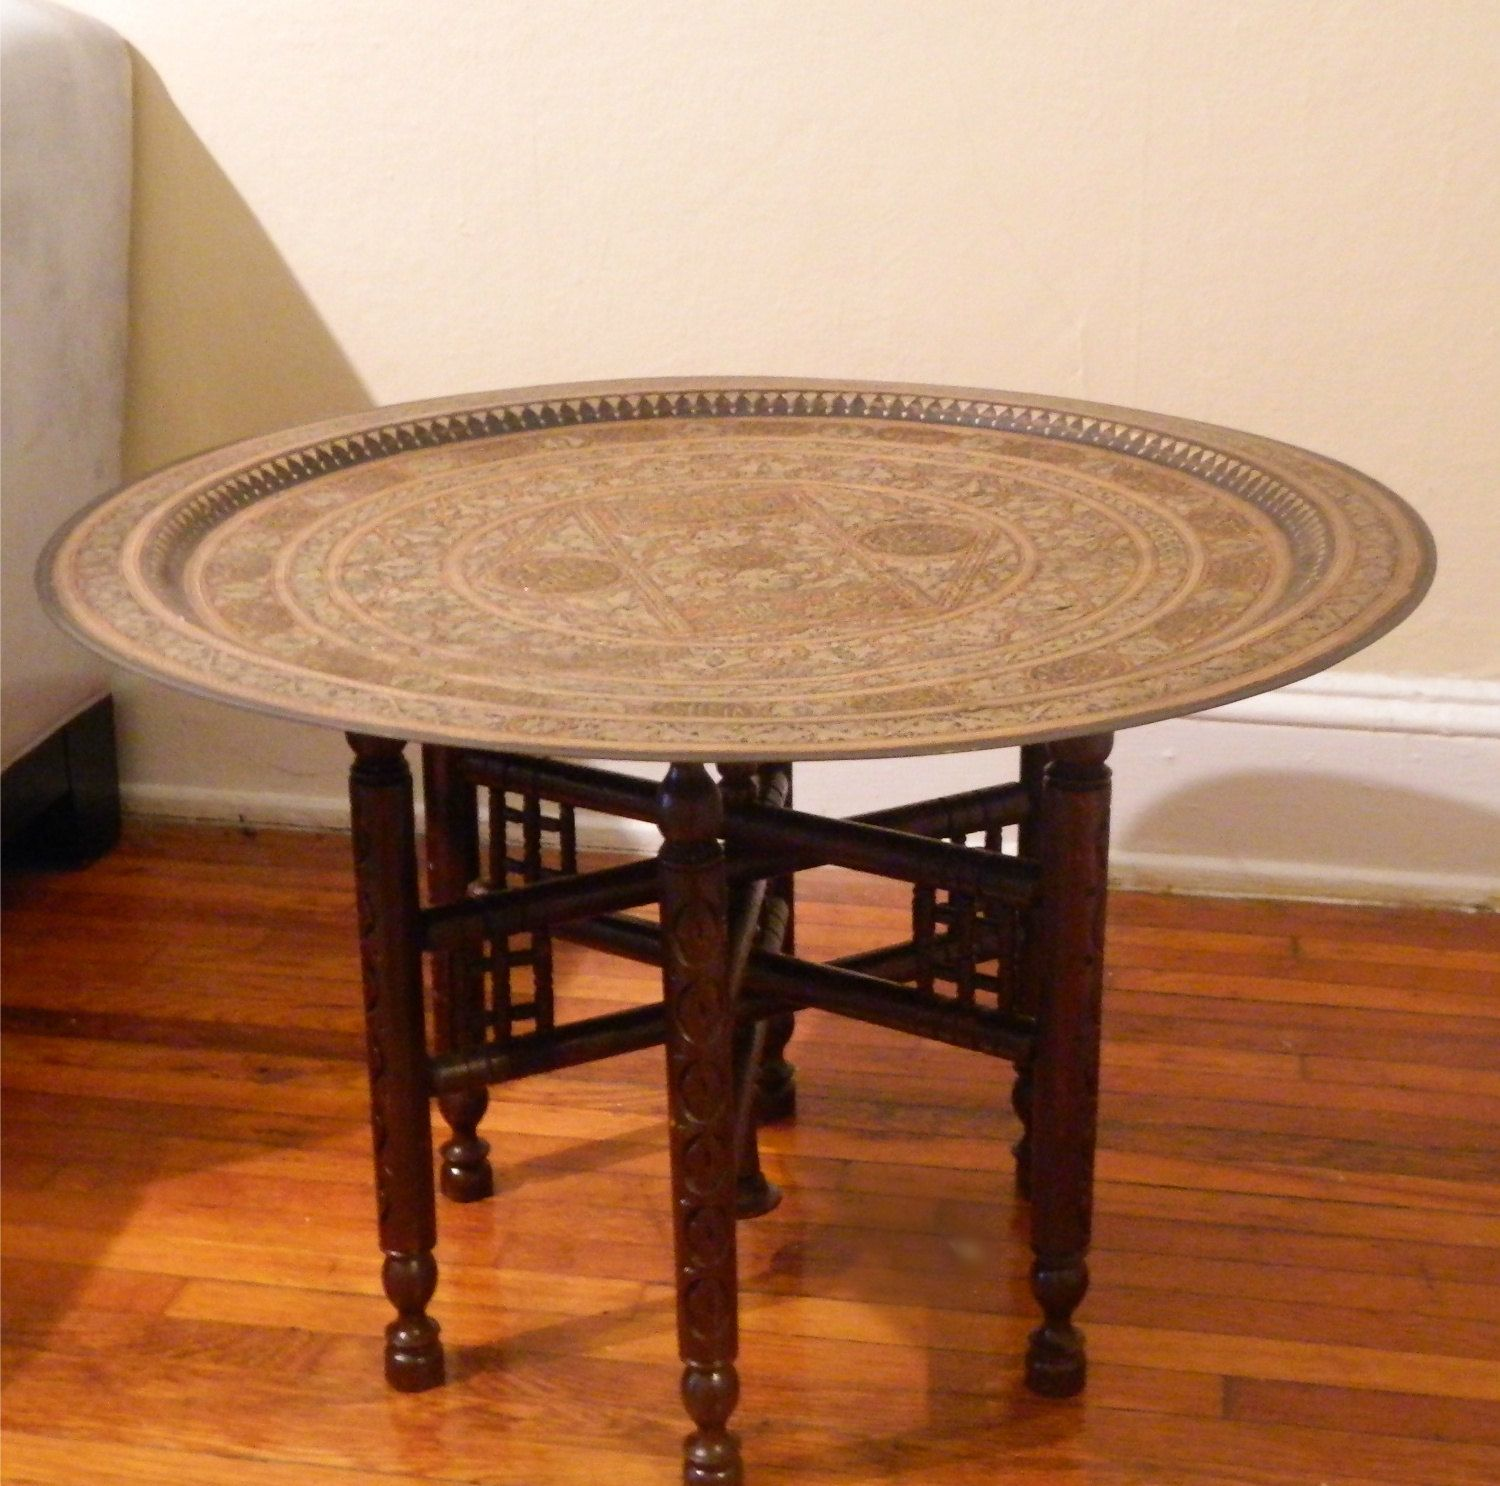 Moroccan Brass Tray Table Google Search Kaffeetisch